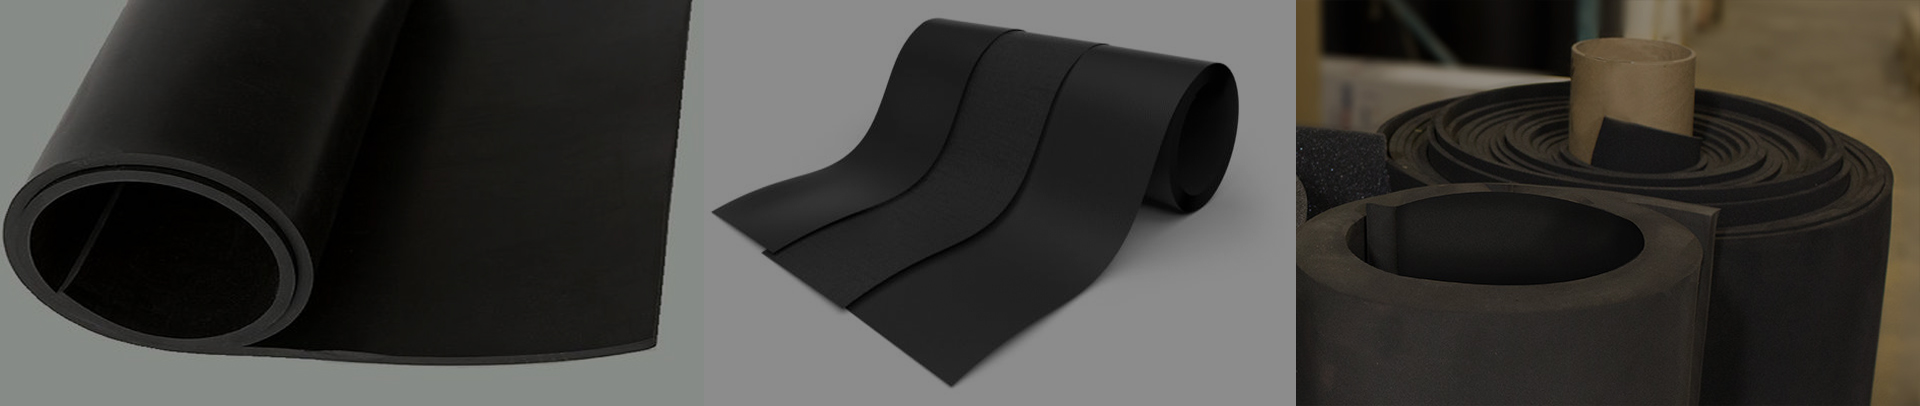 Nylon Cloth Insertion Rubber Sheet Manufacturers India, USA, UK